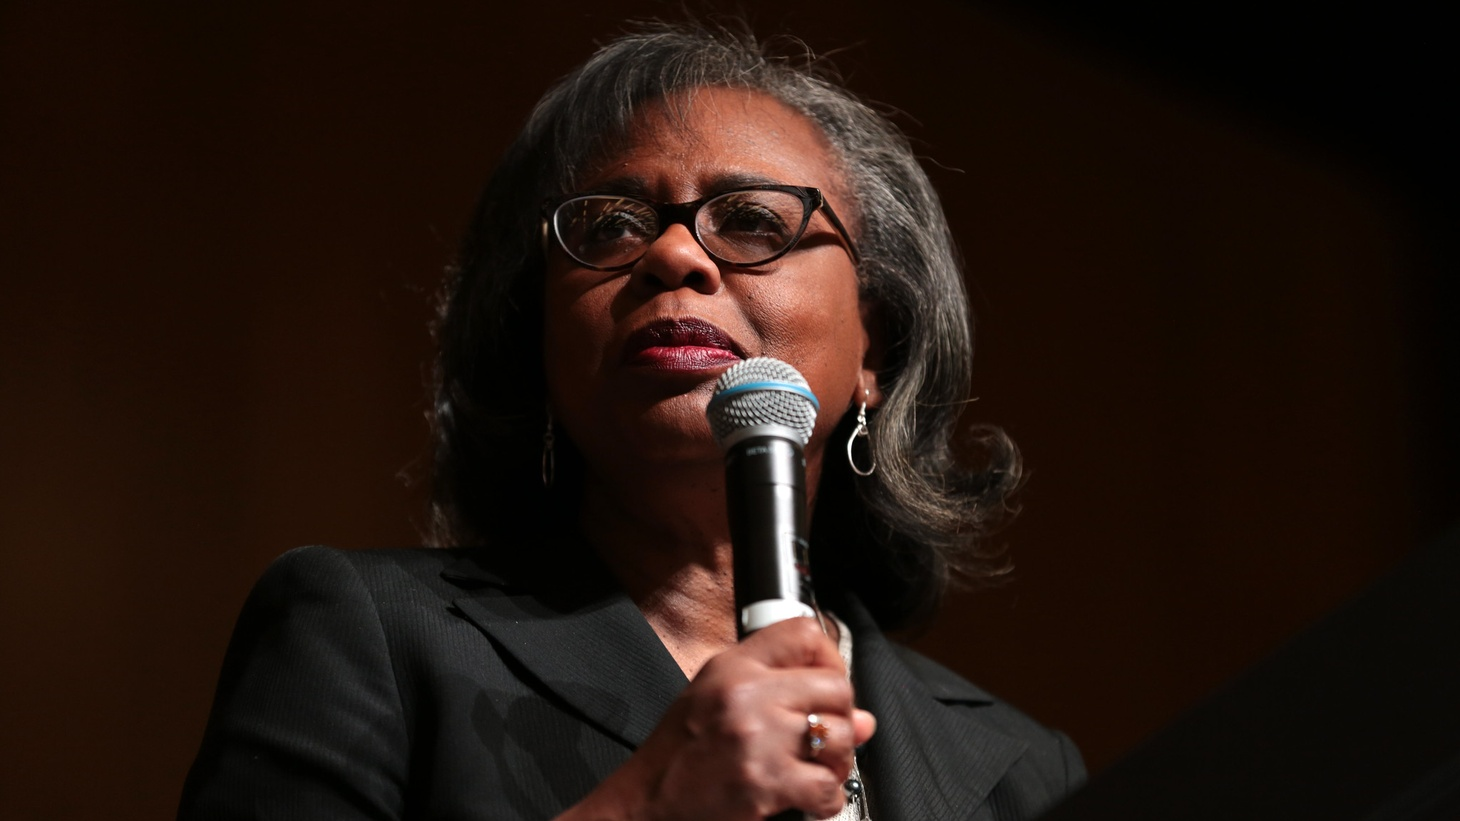 Anita Hill is a founder of the Hollywood Commission, which seeks to bring greater accountability to workplaces in the entertainment industry.